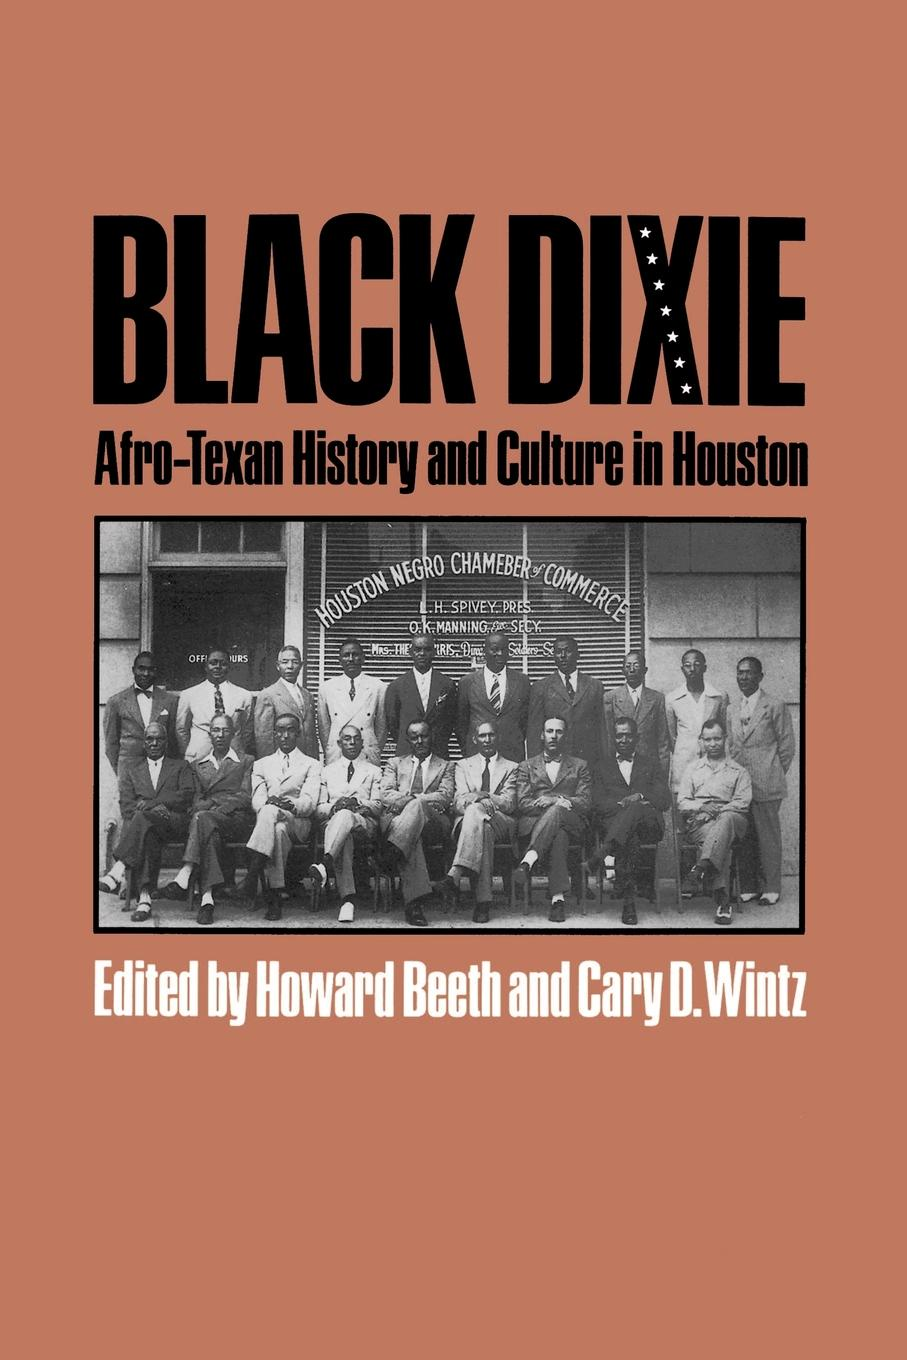 Black Dixie. Afro-Texan History and Culture in Houston